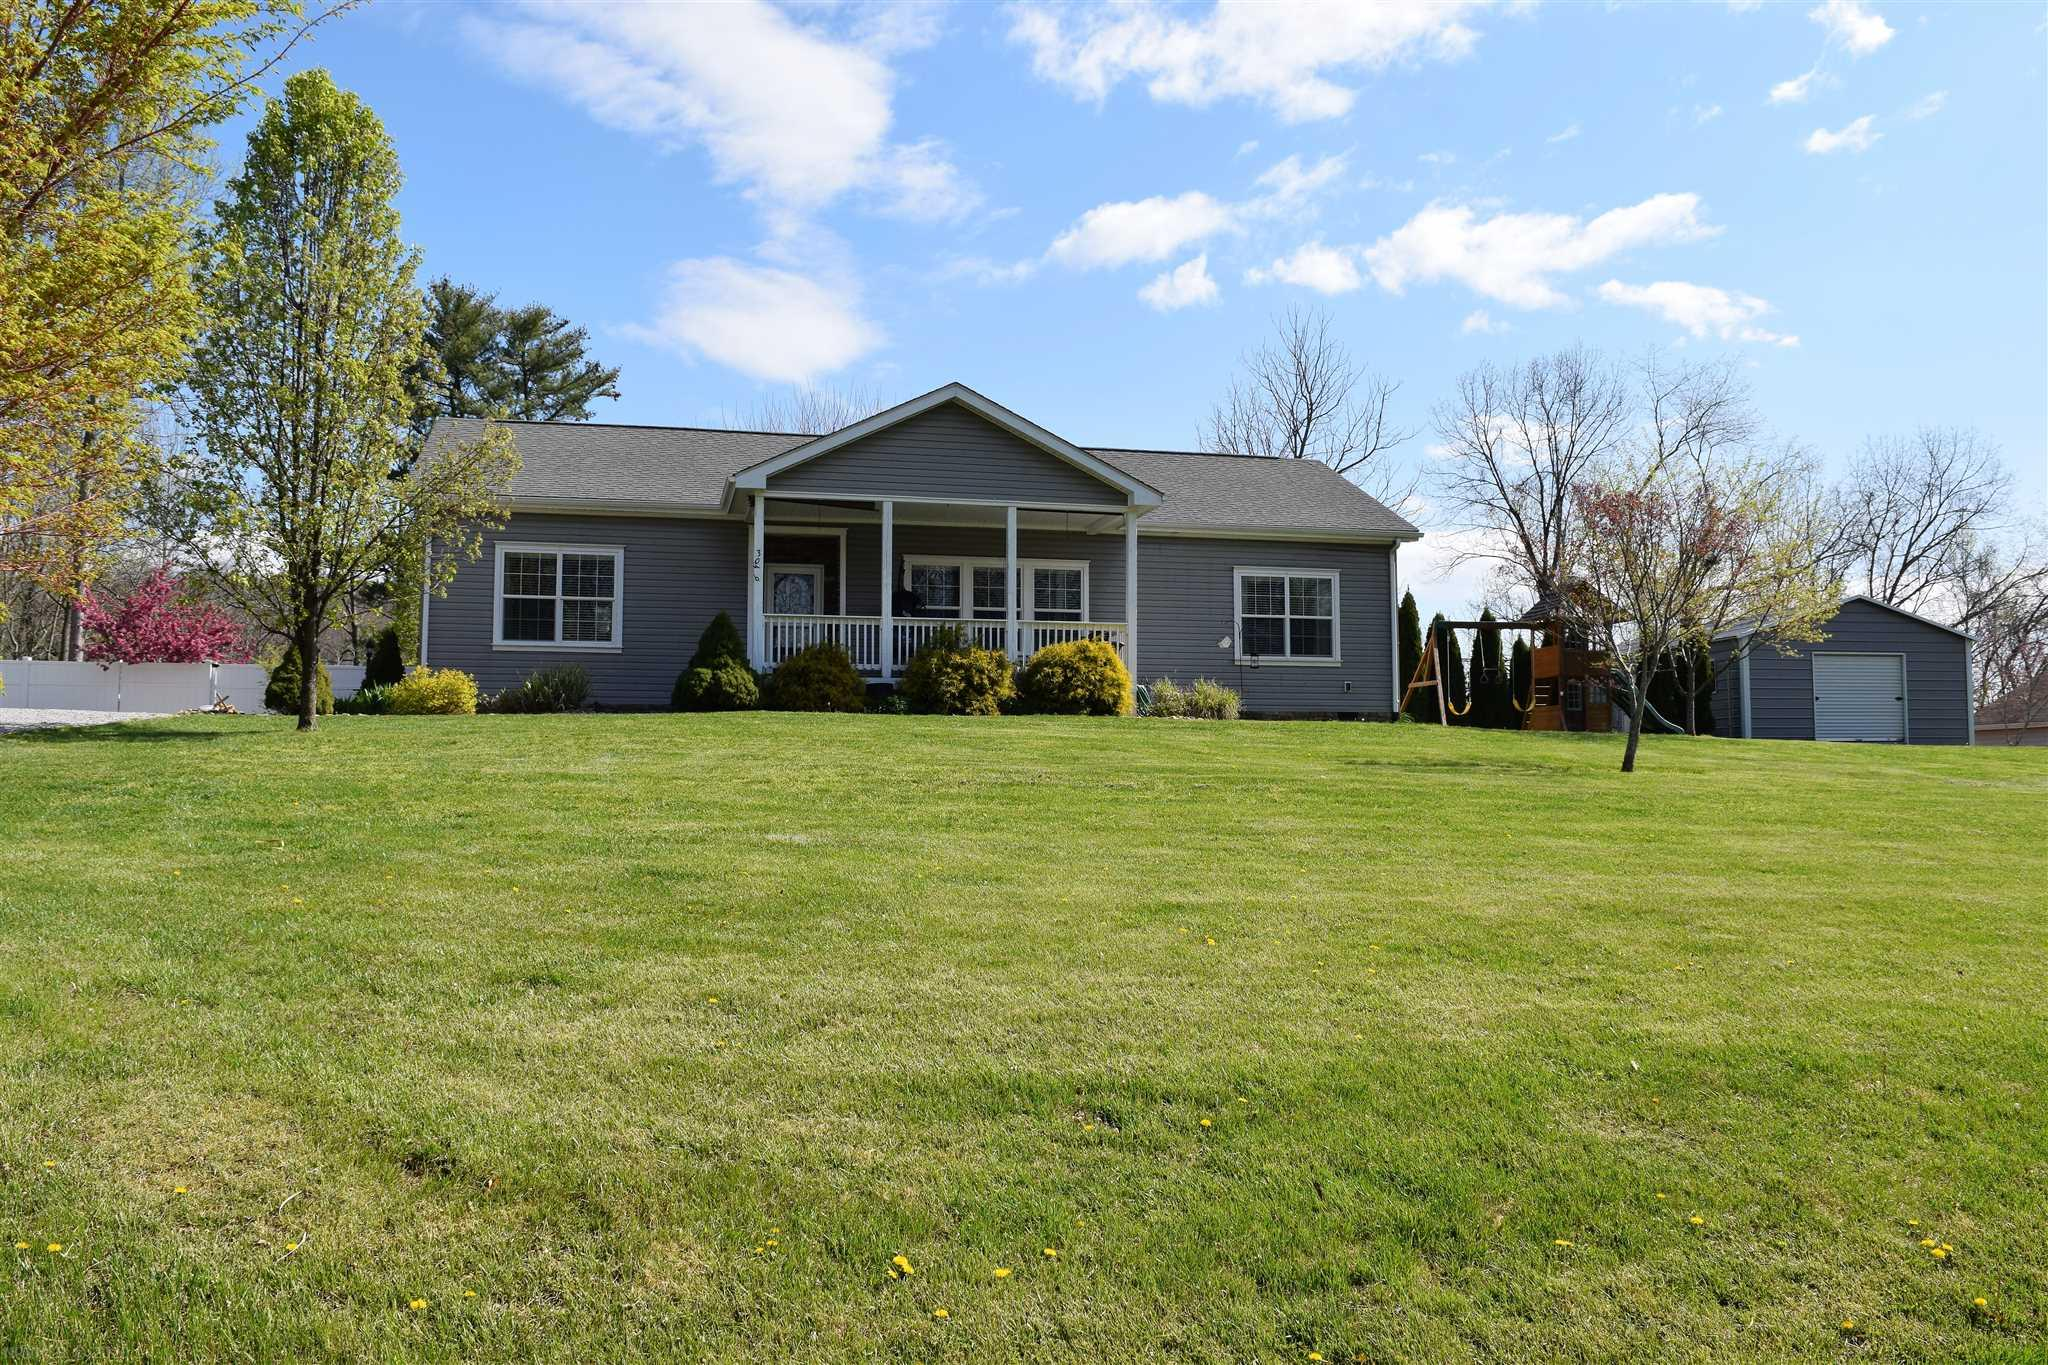 This modern ranch home offers a country setting and is only minutes away from Christiansburg, Blacksburg and Radford.  The 9 ft ceilings add to the spacious open floor plan.  This one level 1600 sq ft home is perfect for a family looking for a fenced back yard and spacious front yard with beautiful landscaping, or for the animal lover.  The back deck provides great space for entertaining family and friends as well as a fire pit to sit and enjoy the summer nights.  The detached building has cement flooring and provides extra space for storage, gym equipment, or a recreational vehicle.  This home exhibits an enjoyable outdoor setting as well as indoor and is moments from town.